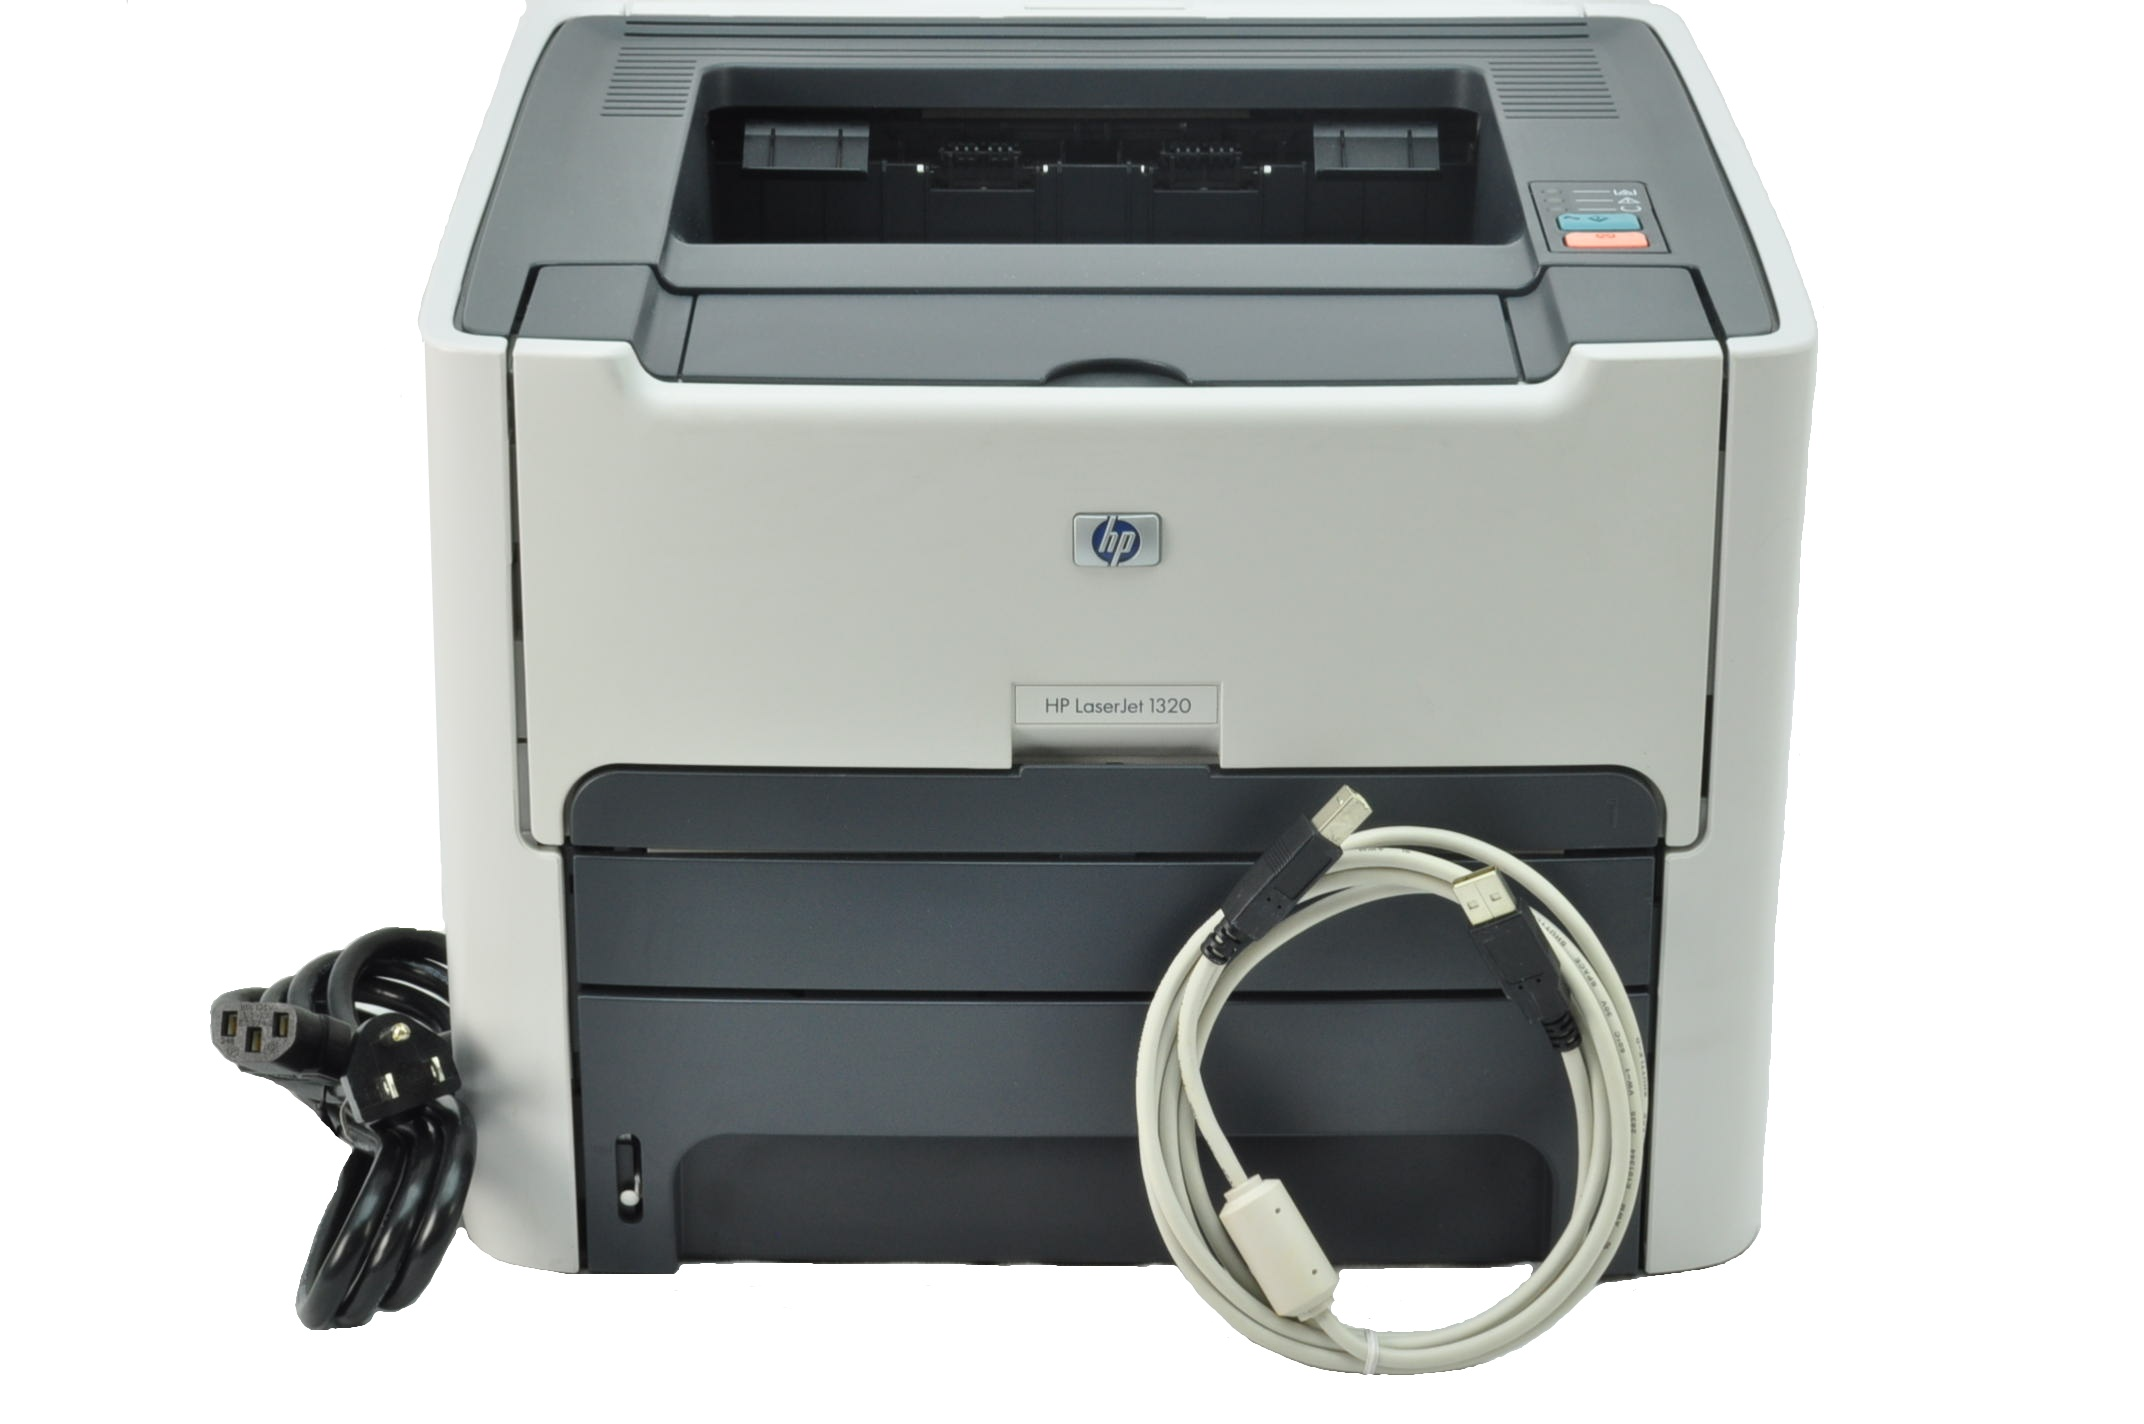 hp laserjet 1320 laser 22ppm printer w usb and pwr cable. Black Bedroom Furniture Sets. Home Design Ideas